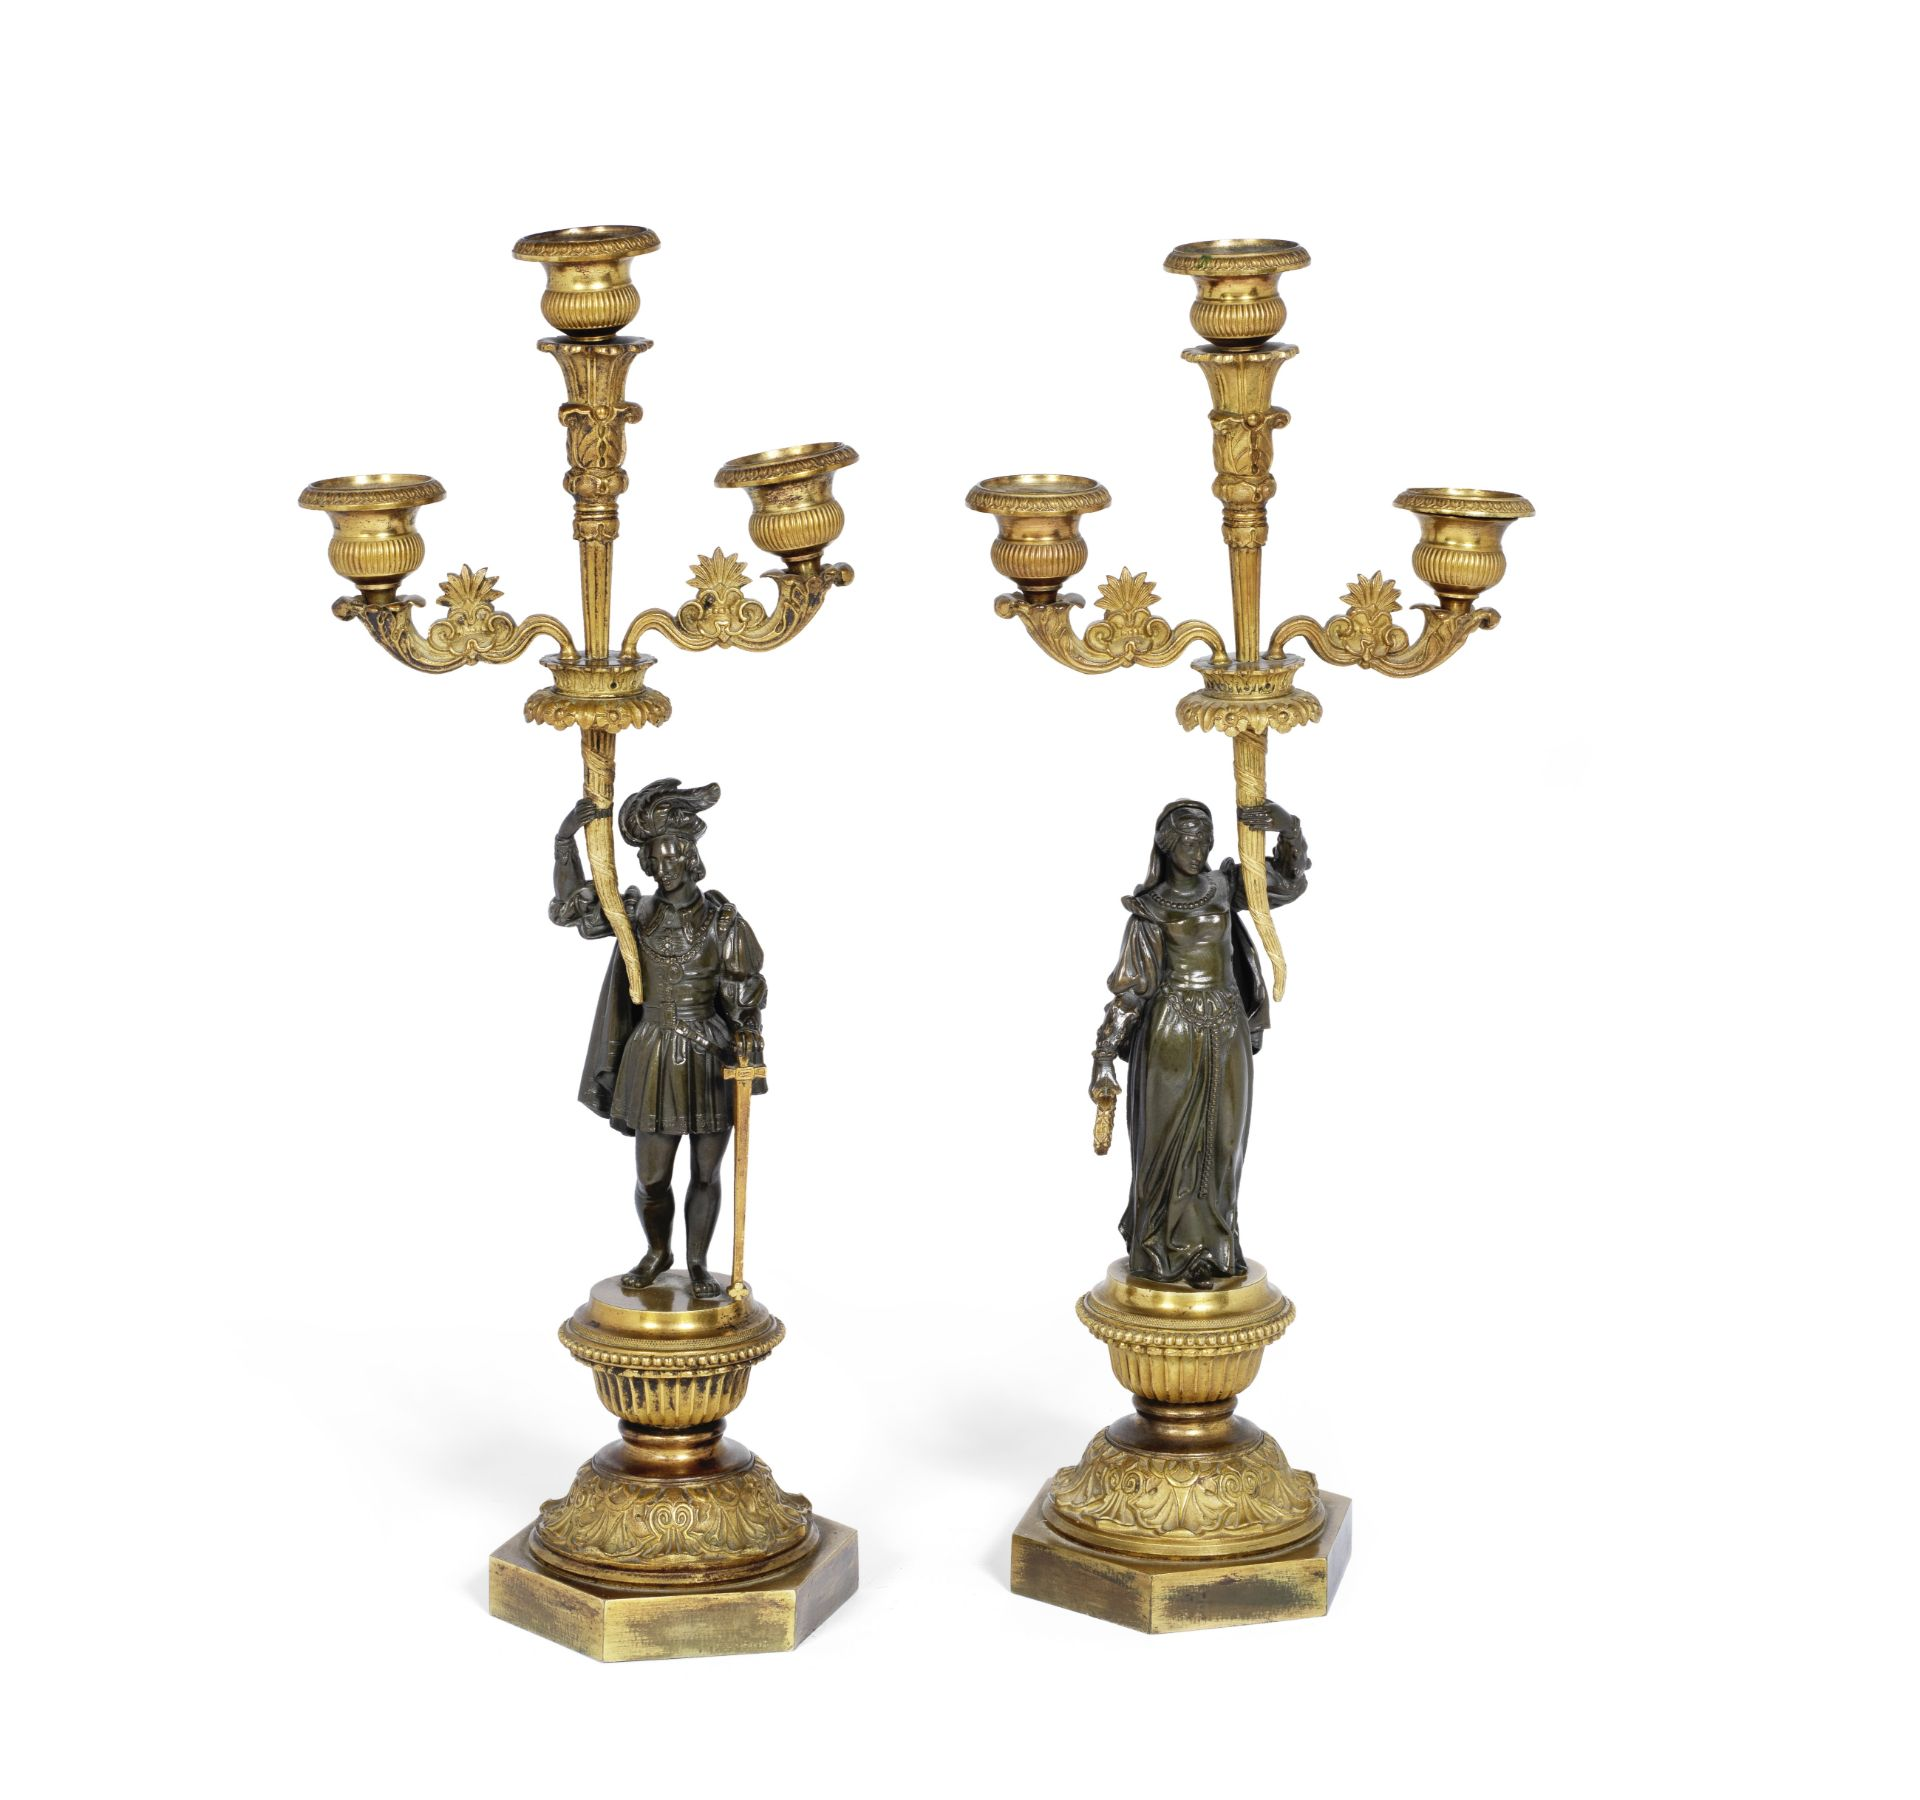 Los 54 - A pair of Louis Philippe gilt bronze figural candlebra in the Troubadour style (2)